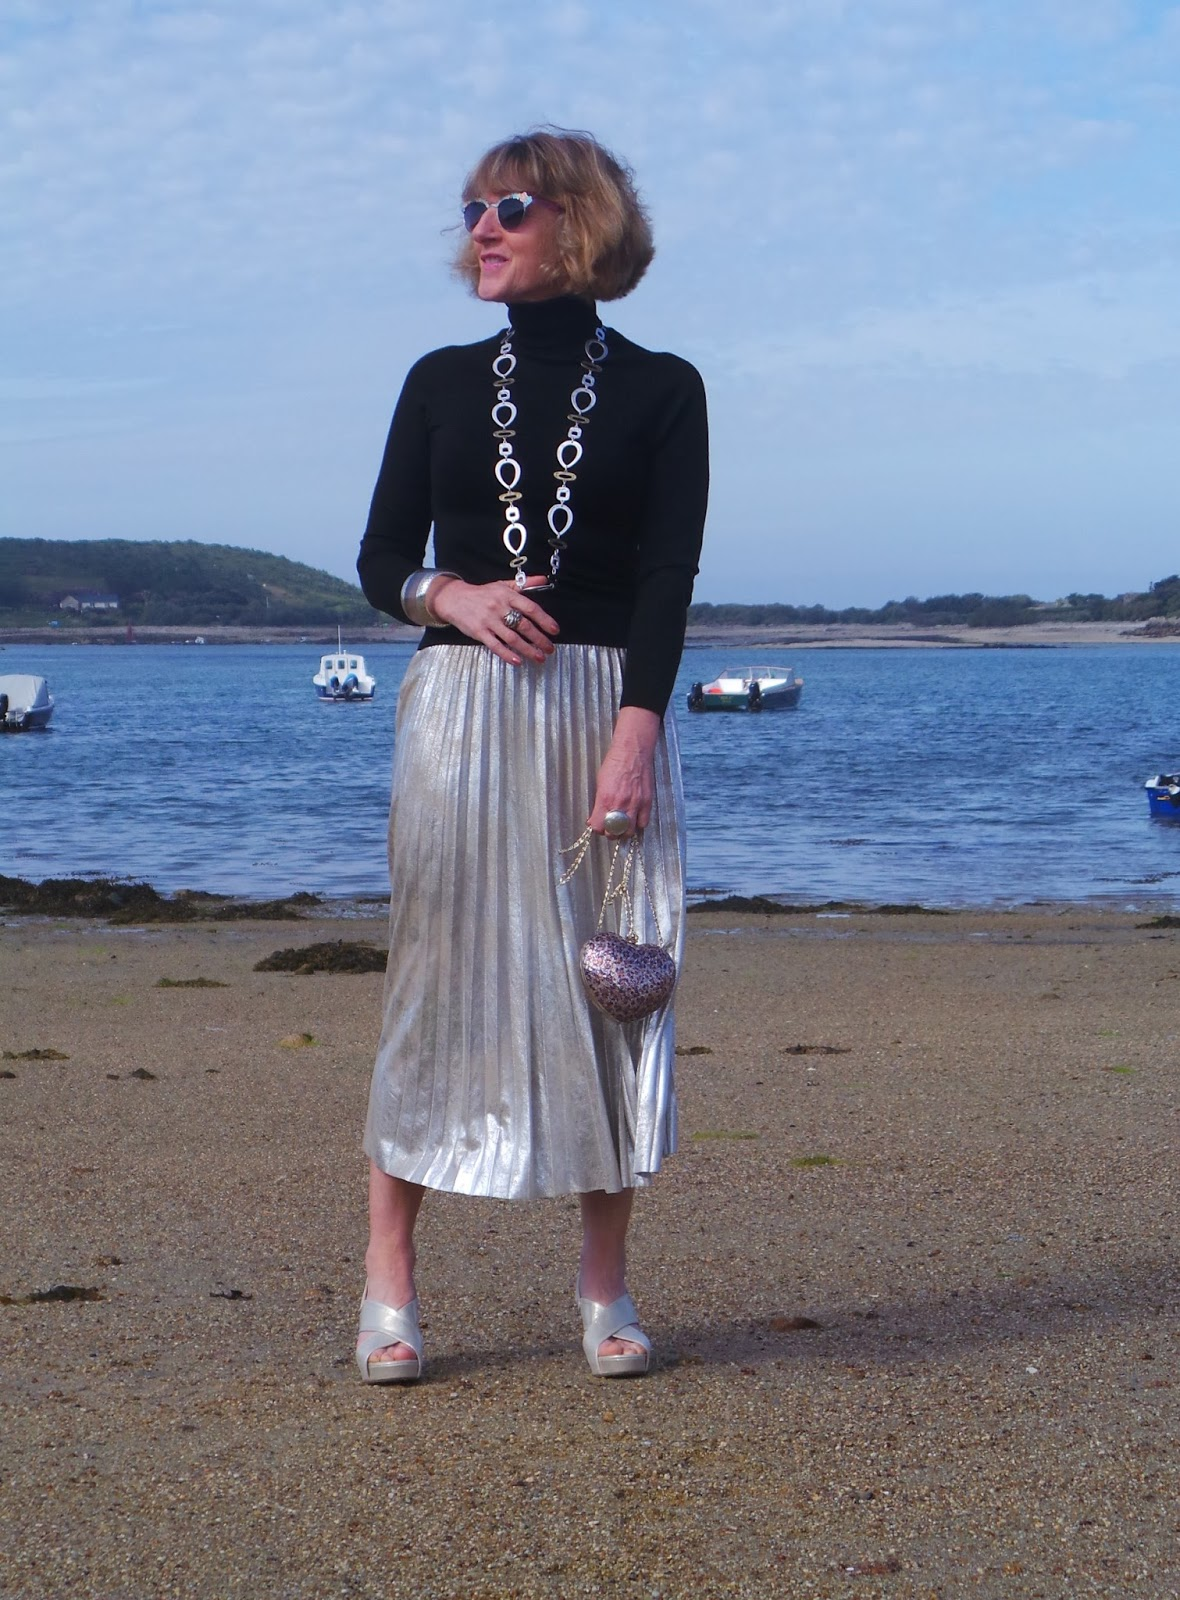 If you challenge an over-50s fashion blogger to style Marvellous Metallics, Anna's Island Style shows the kids how to do it